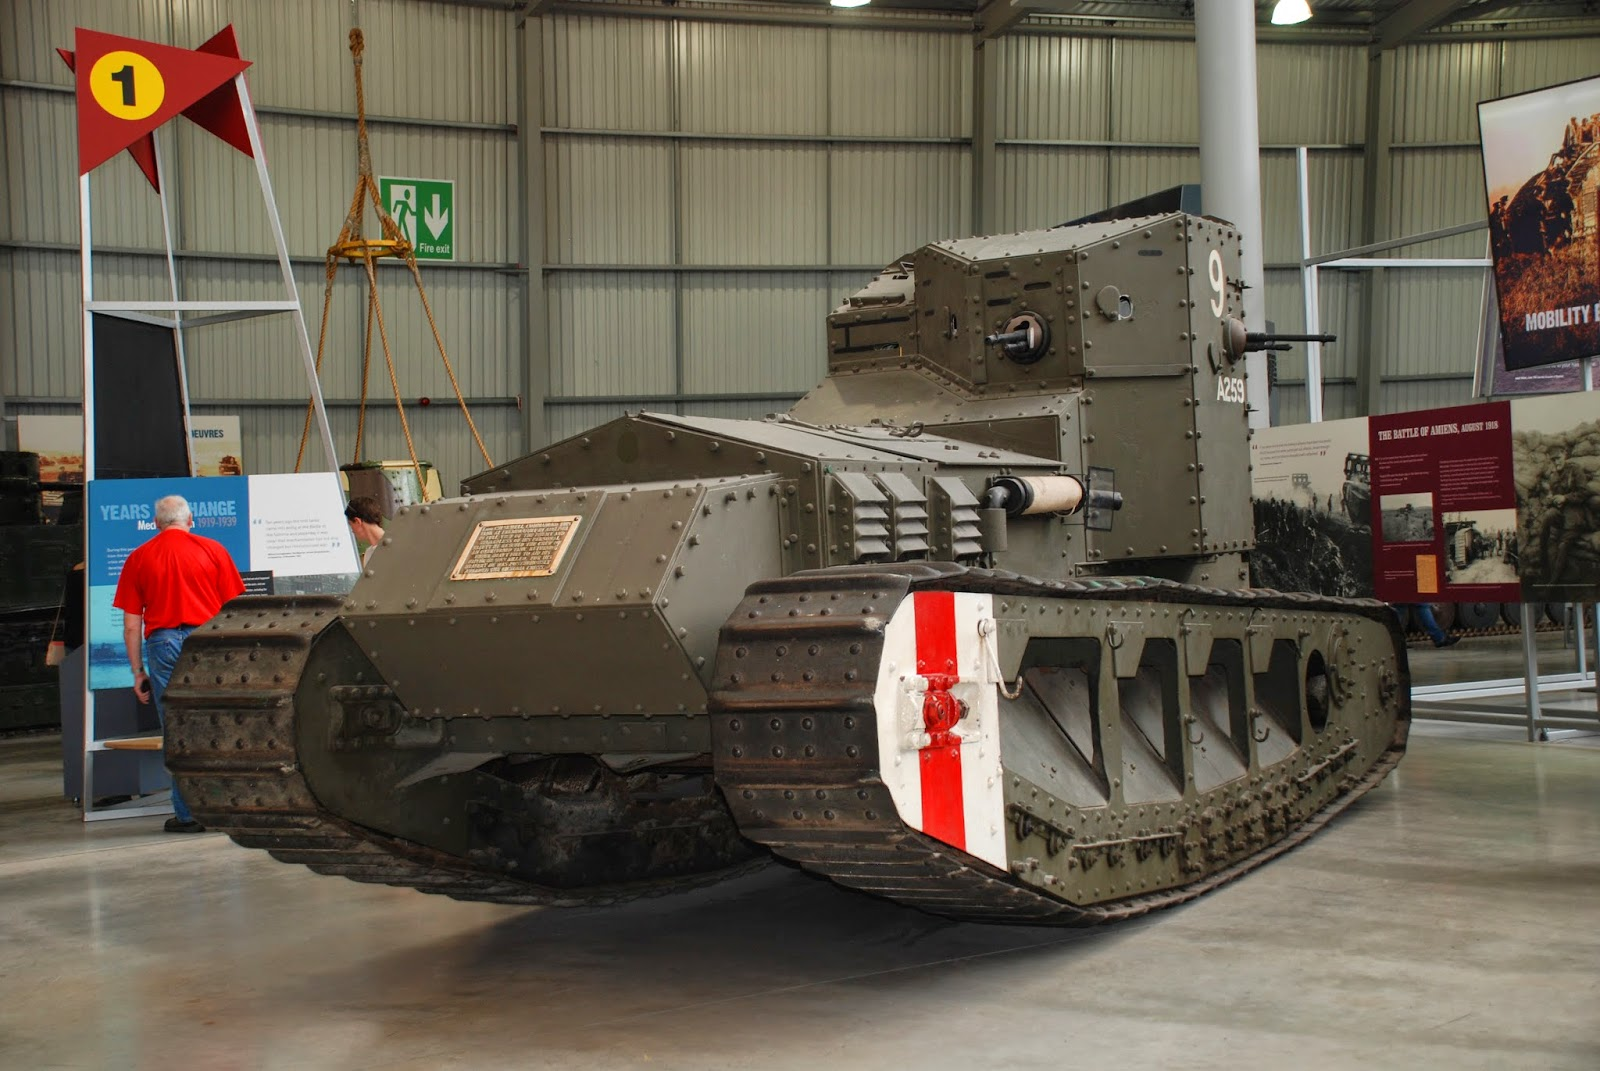 The Tank Museum, Bovington, Dorset